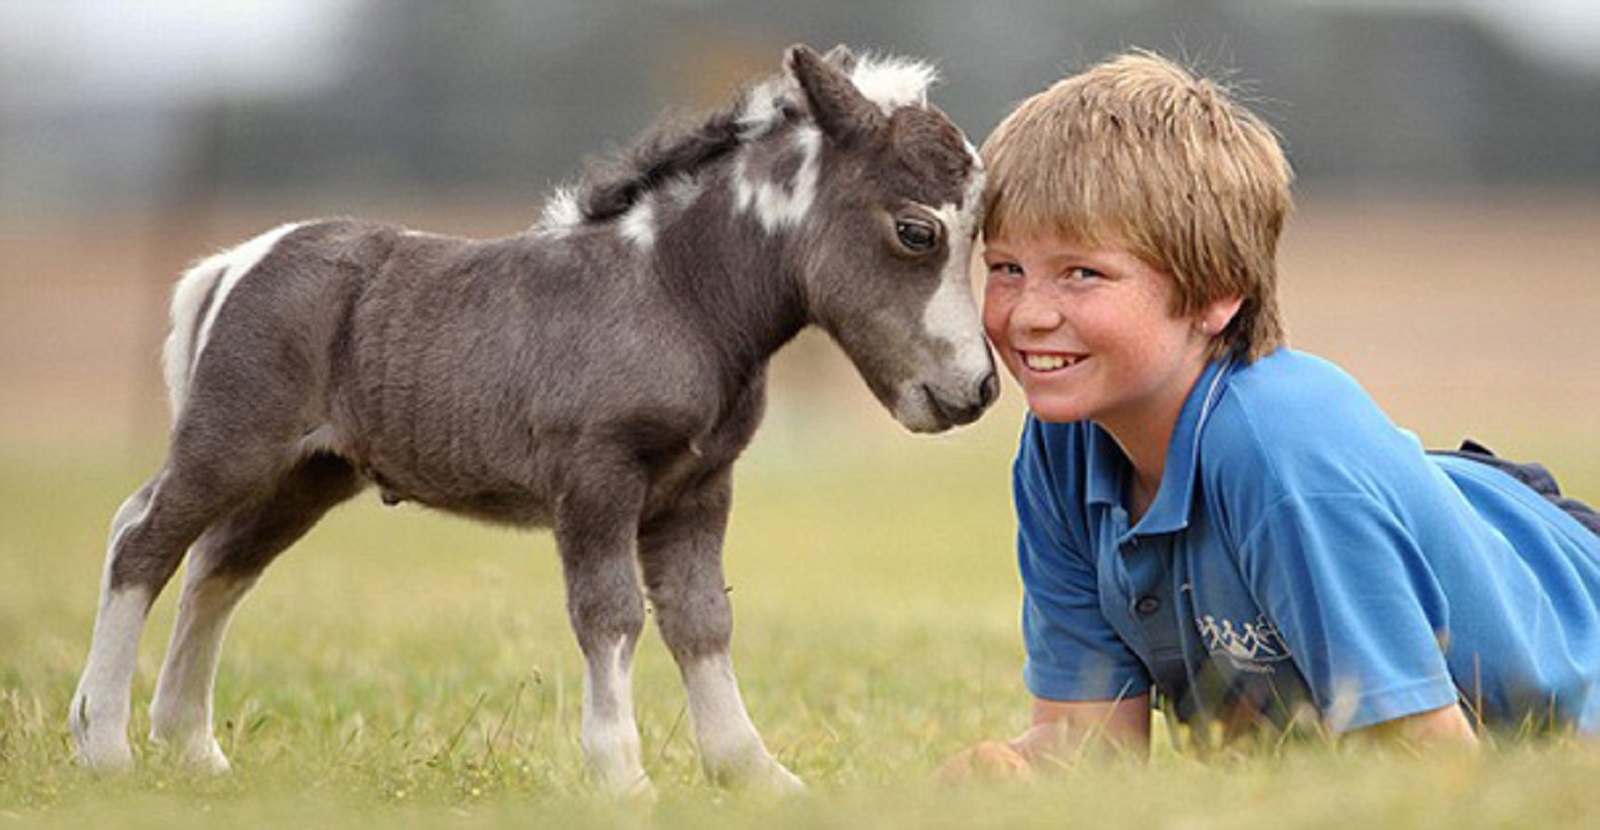 Miniature Horses as Service Animals